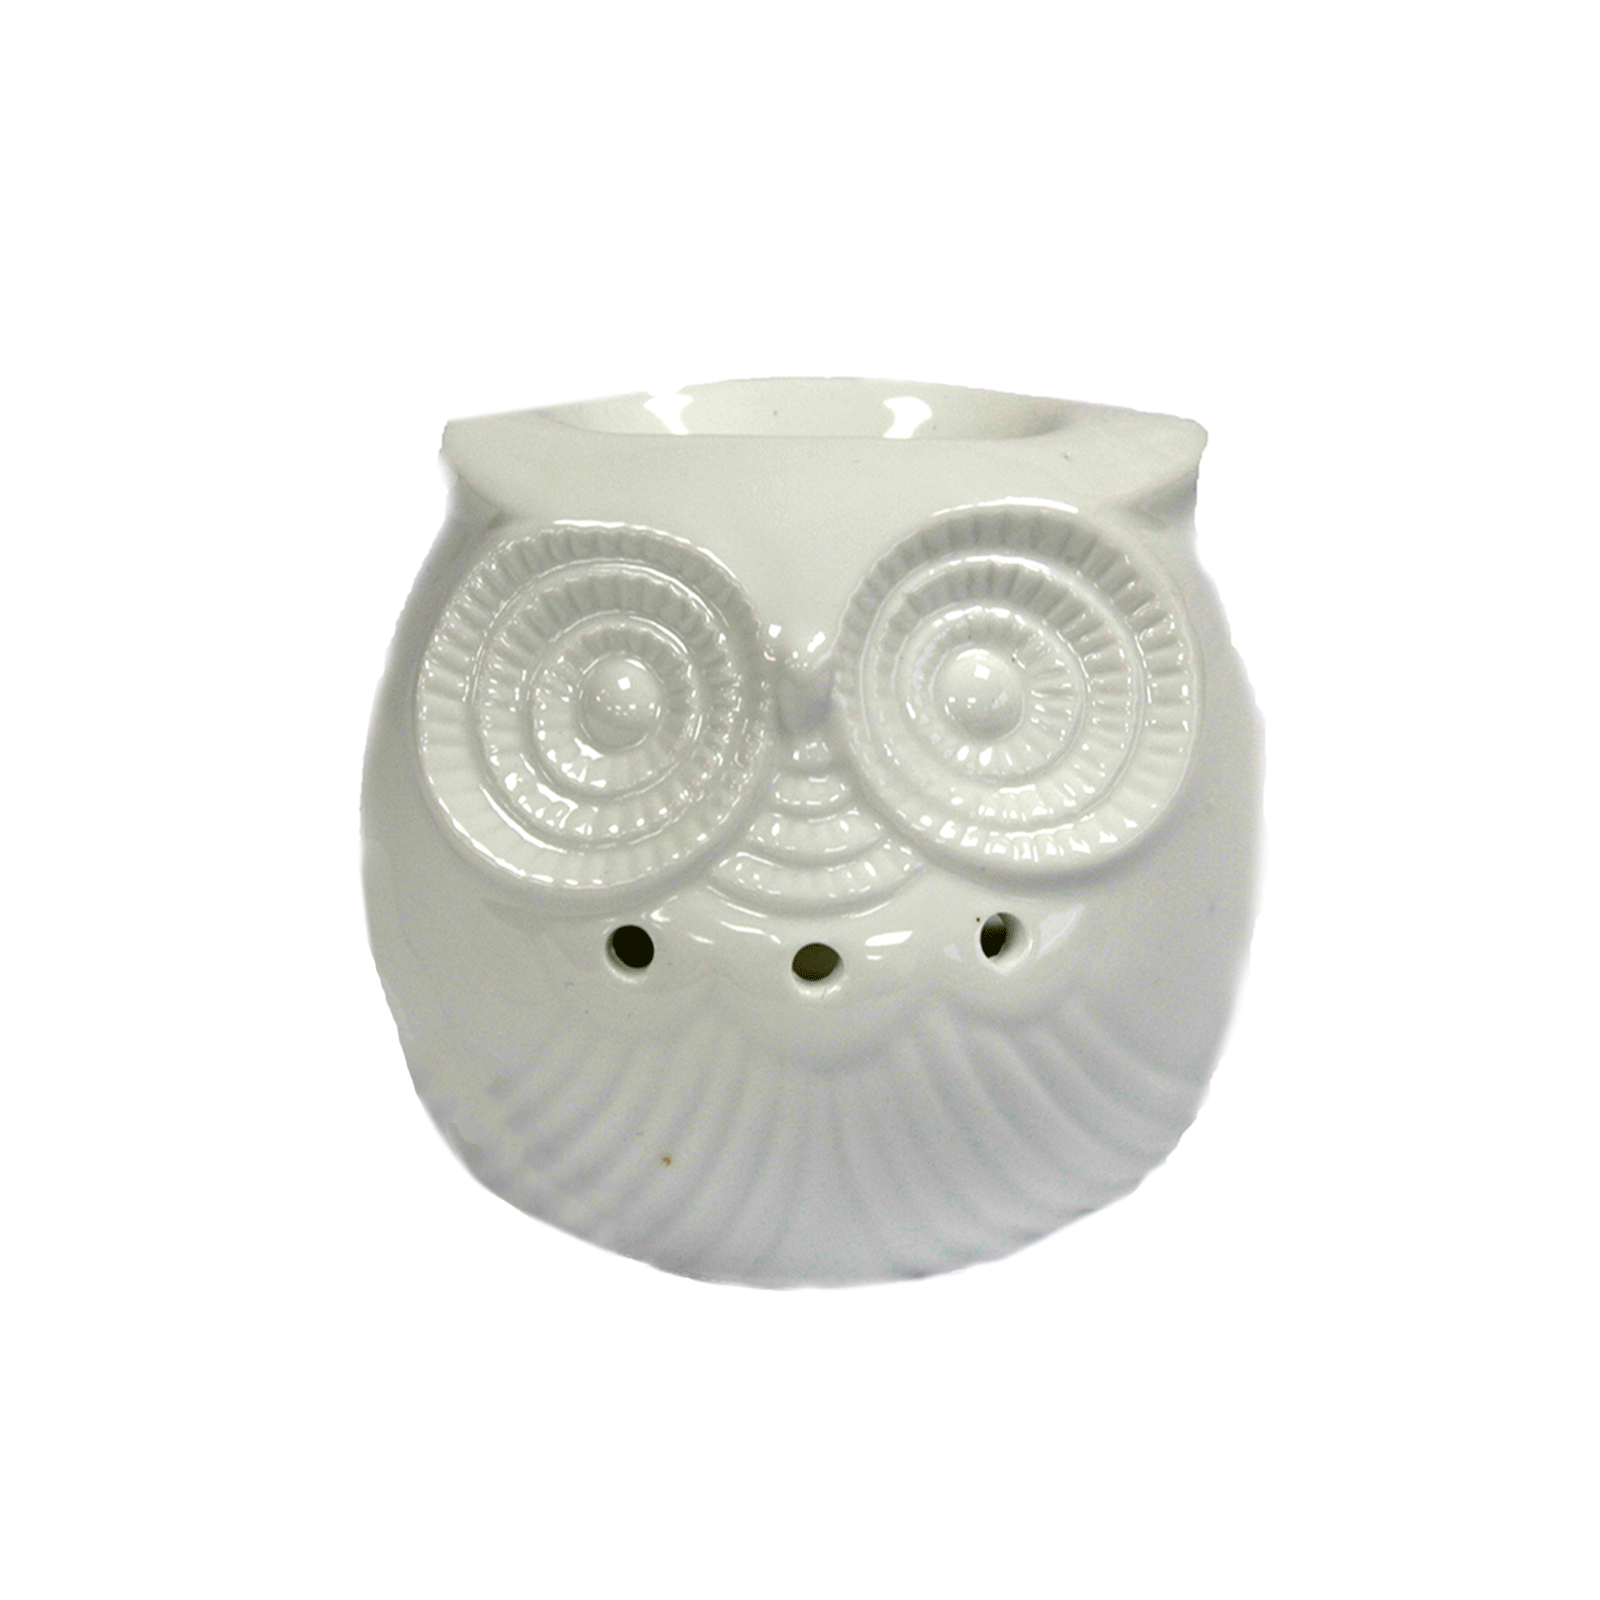 White ceramic owl oil burner